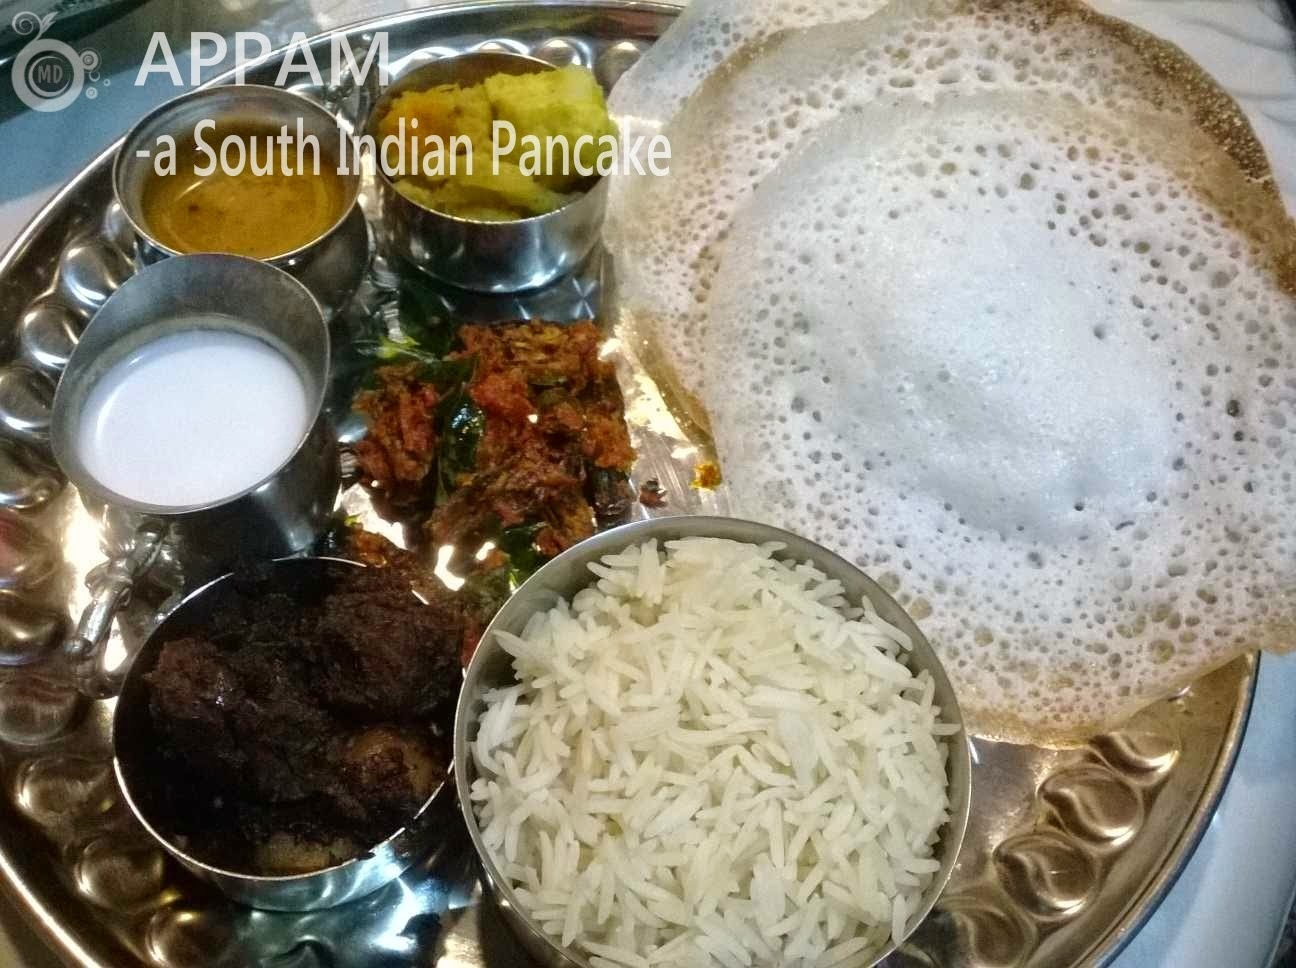 Appam -a South Indian Pancake